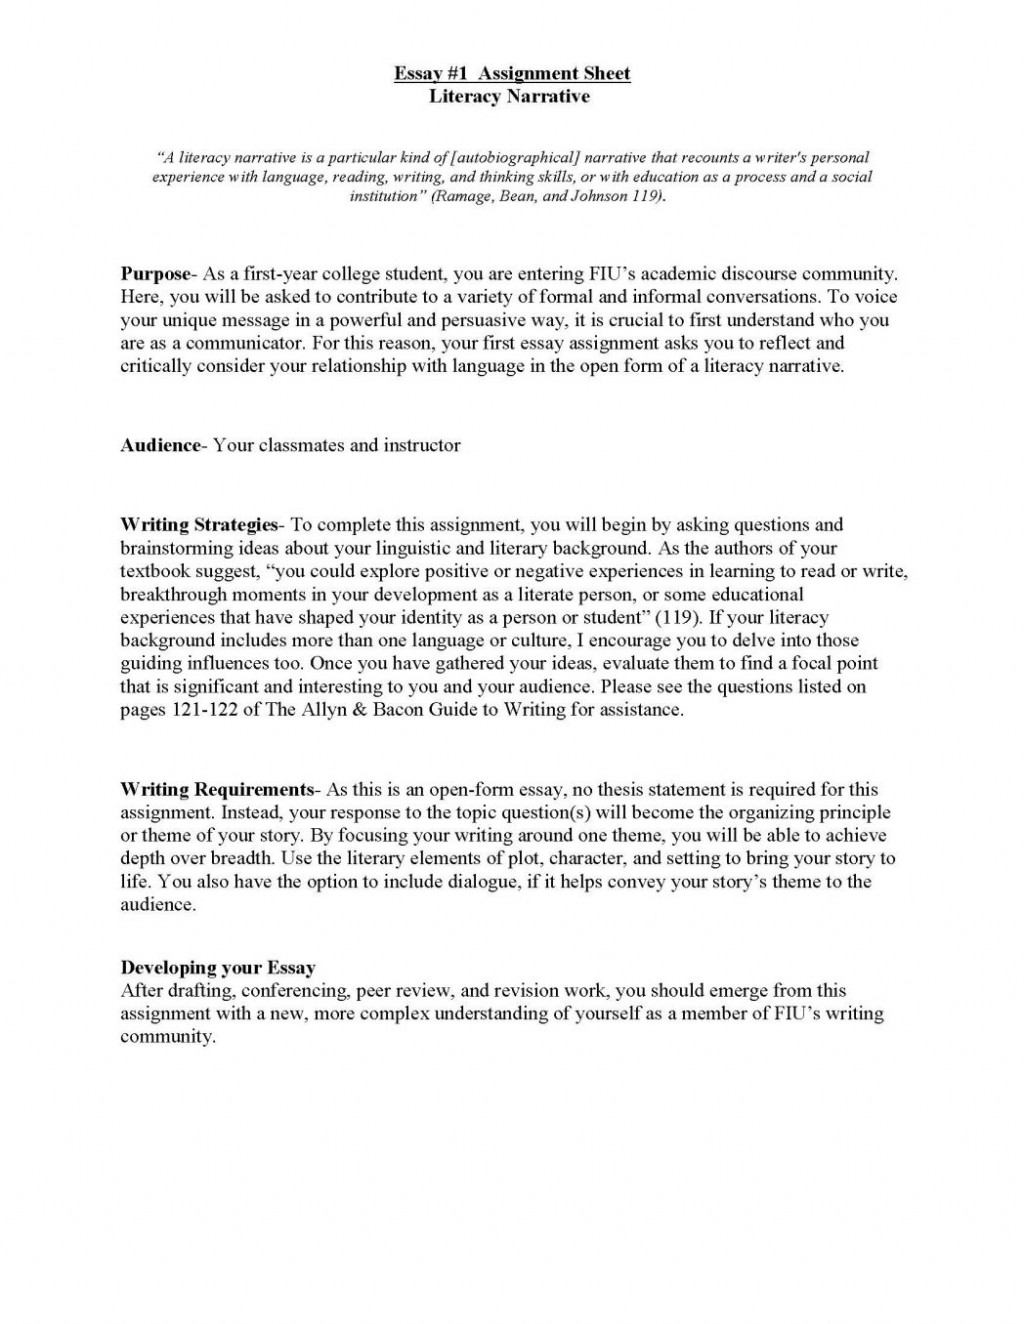 008 Essay Example Literacy Narrative Thesis Statement Examples For Essays Outline Writing Step By Unit Assignment Spring 2012 P Ppt 4th Grade About Phenomenal Personal Sample Digital Large